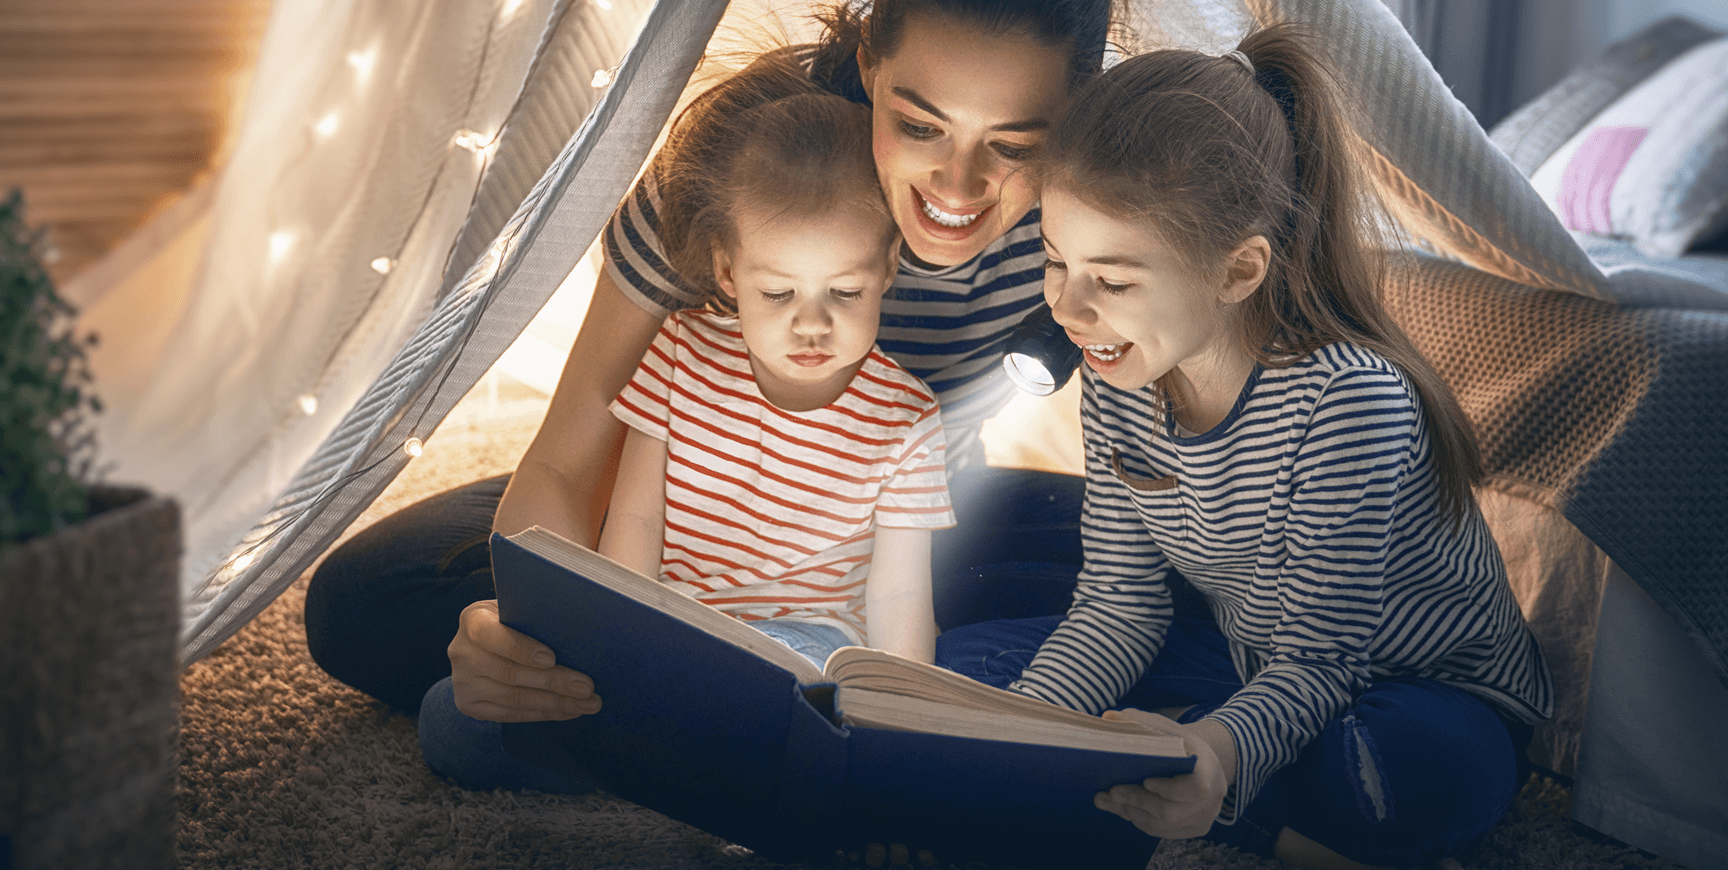 Family smiling and reading book